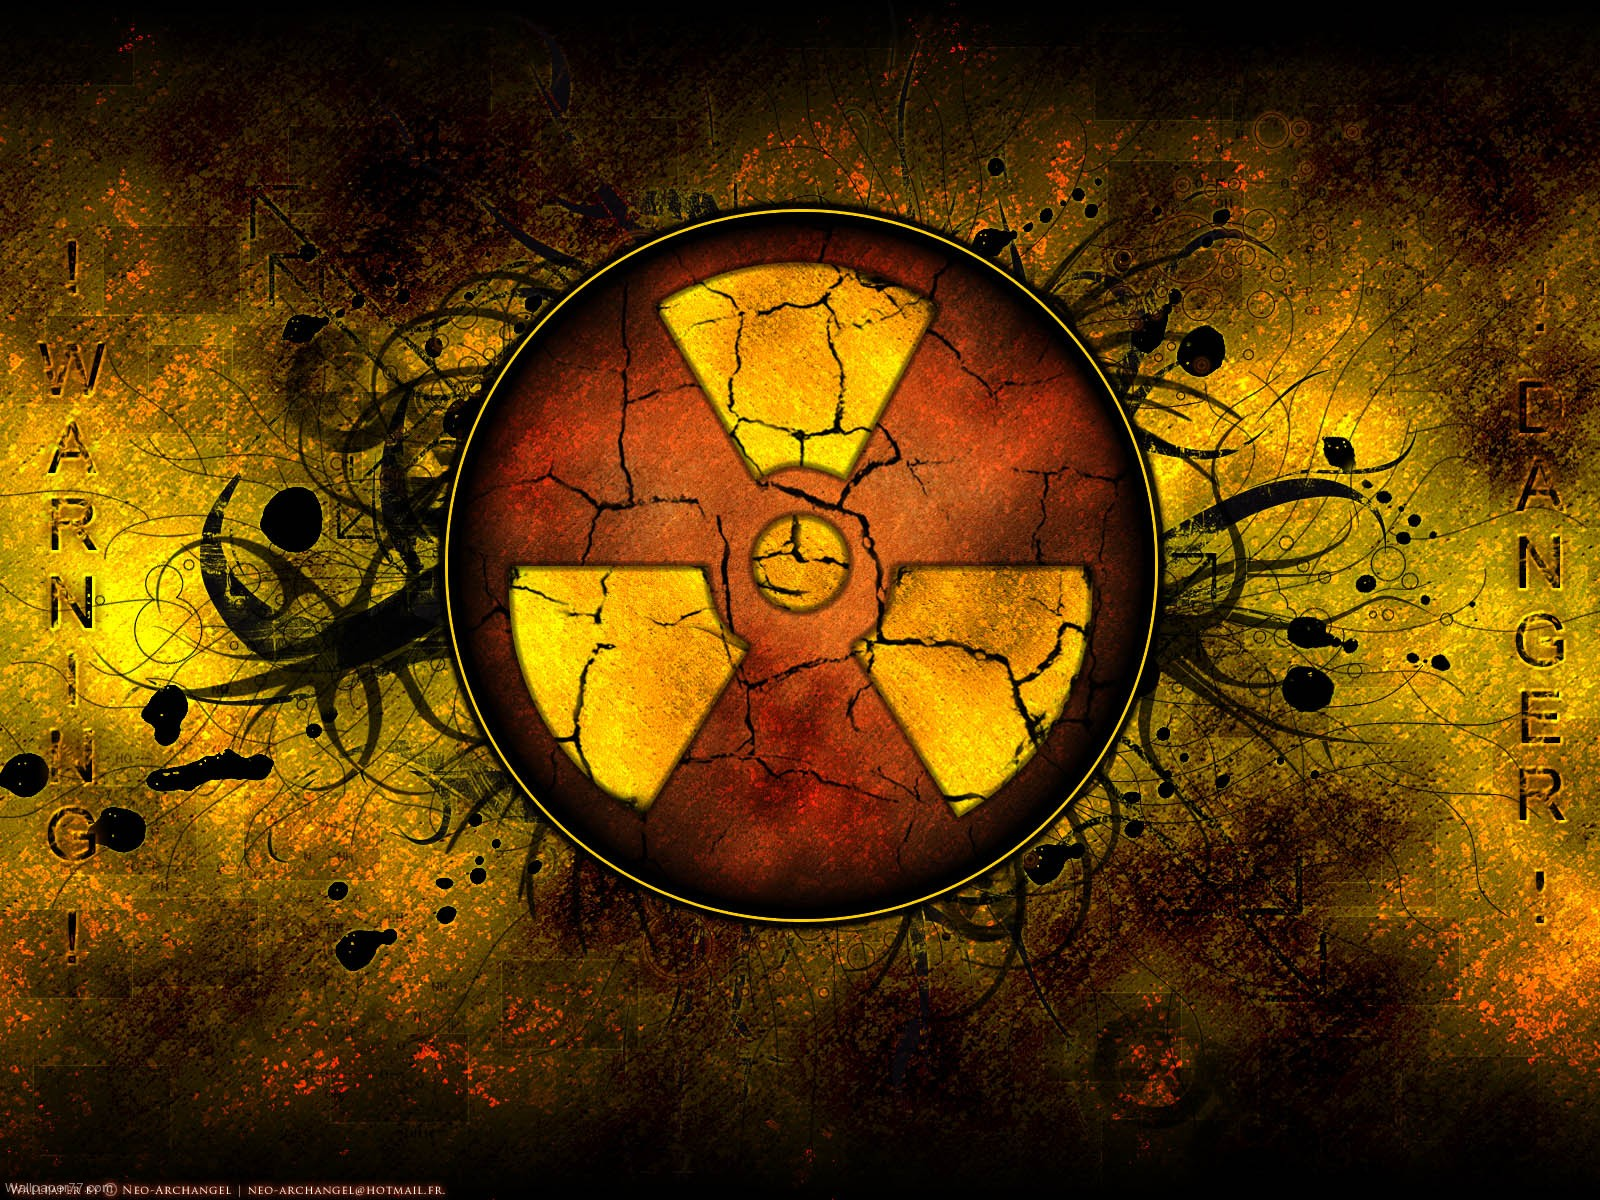 Nuke 1600x1200 pixels Wallpapers tagged Abstract Wallpapers Vector 1600x1200